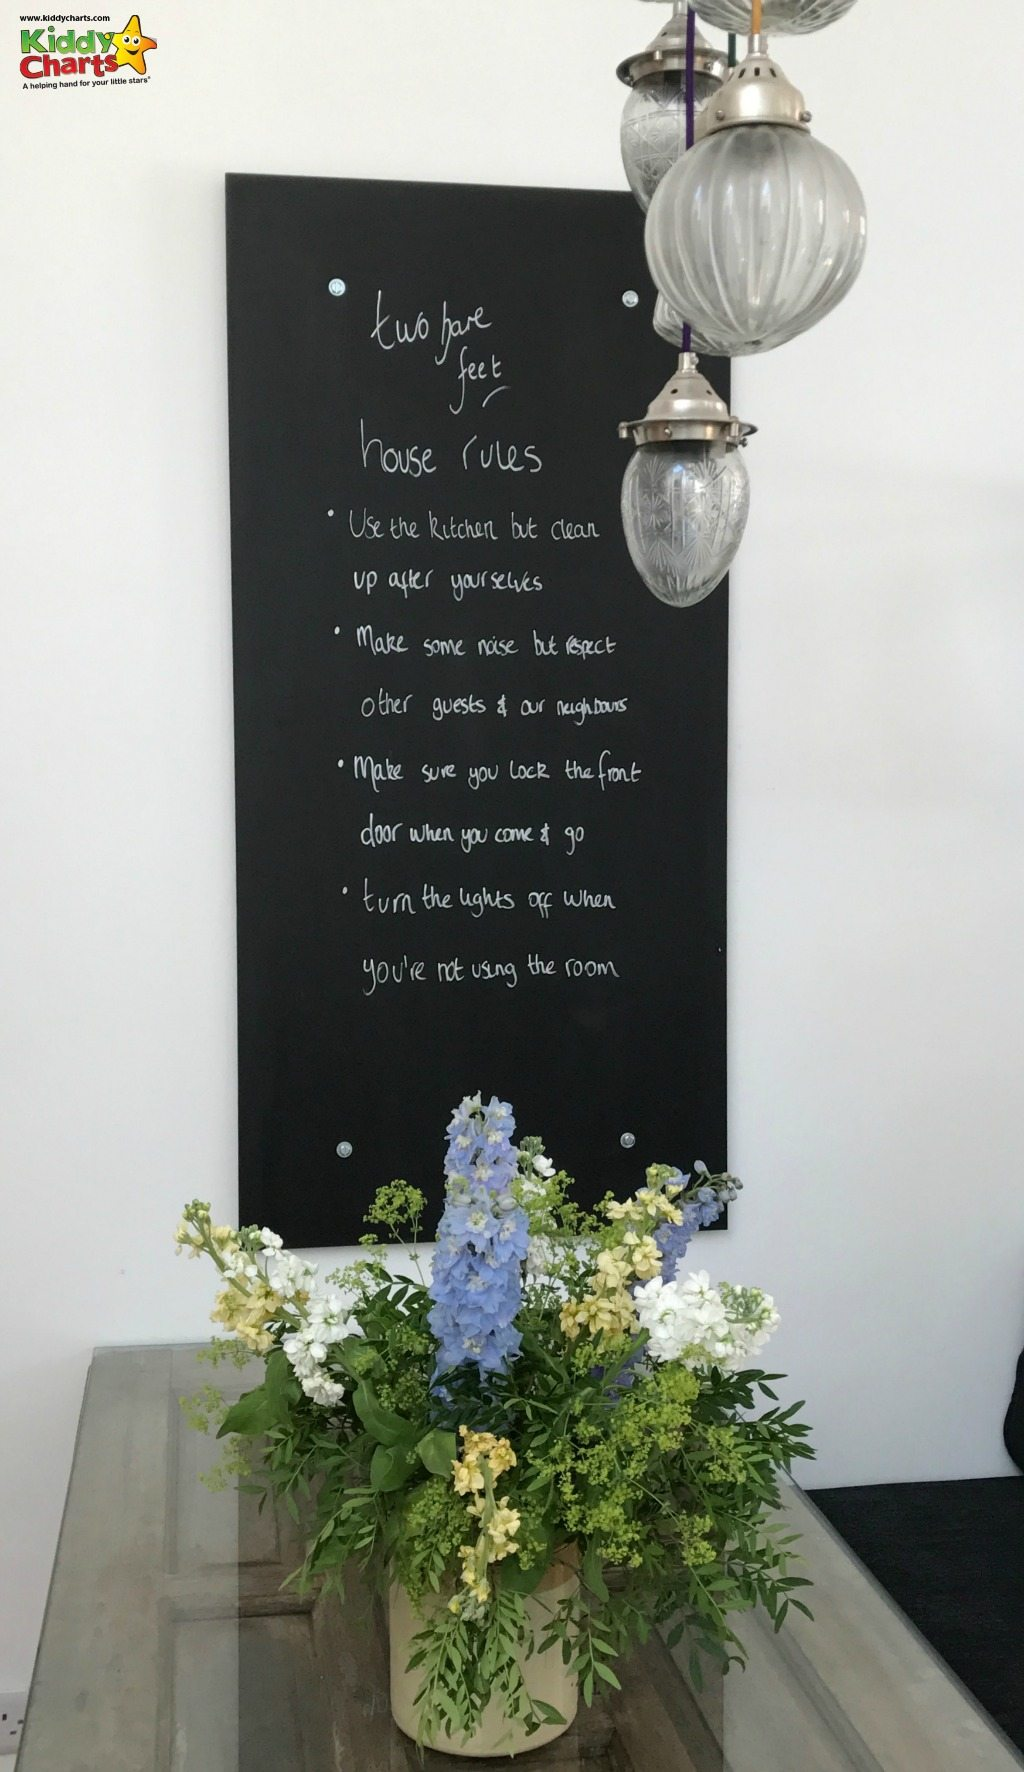 Two Bare Feet Winchester has some lovely house rules, for you and the kids to stick to!